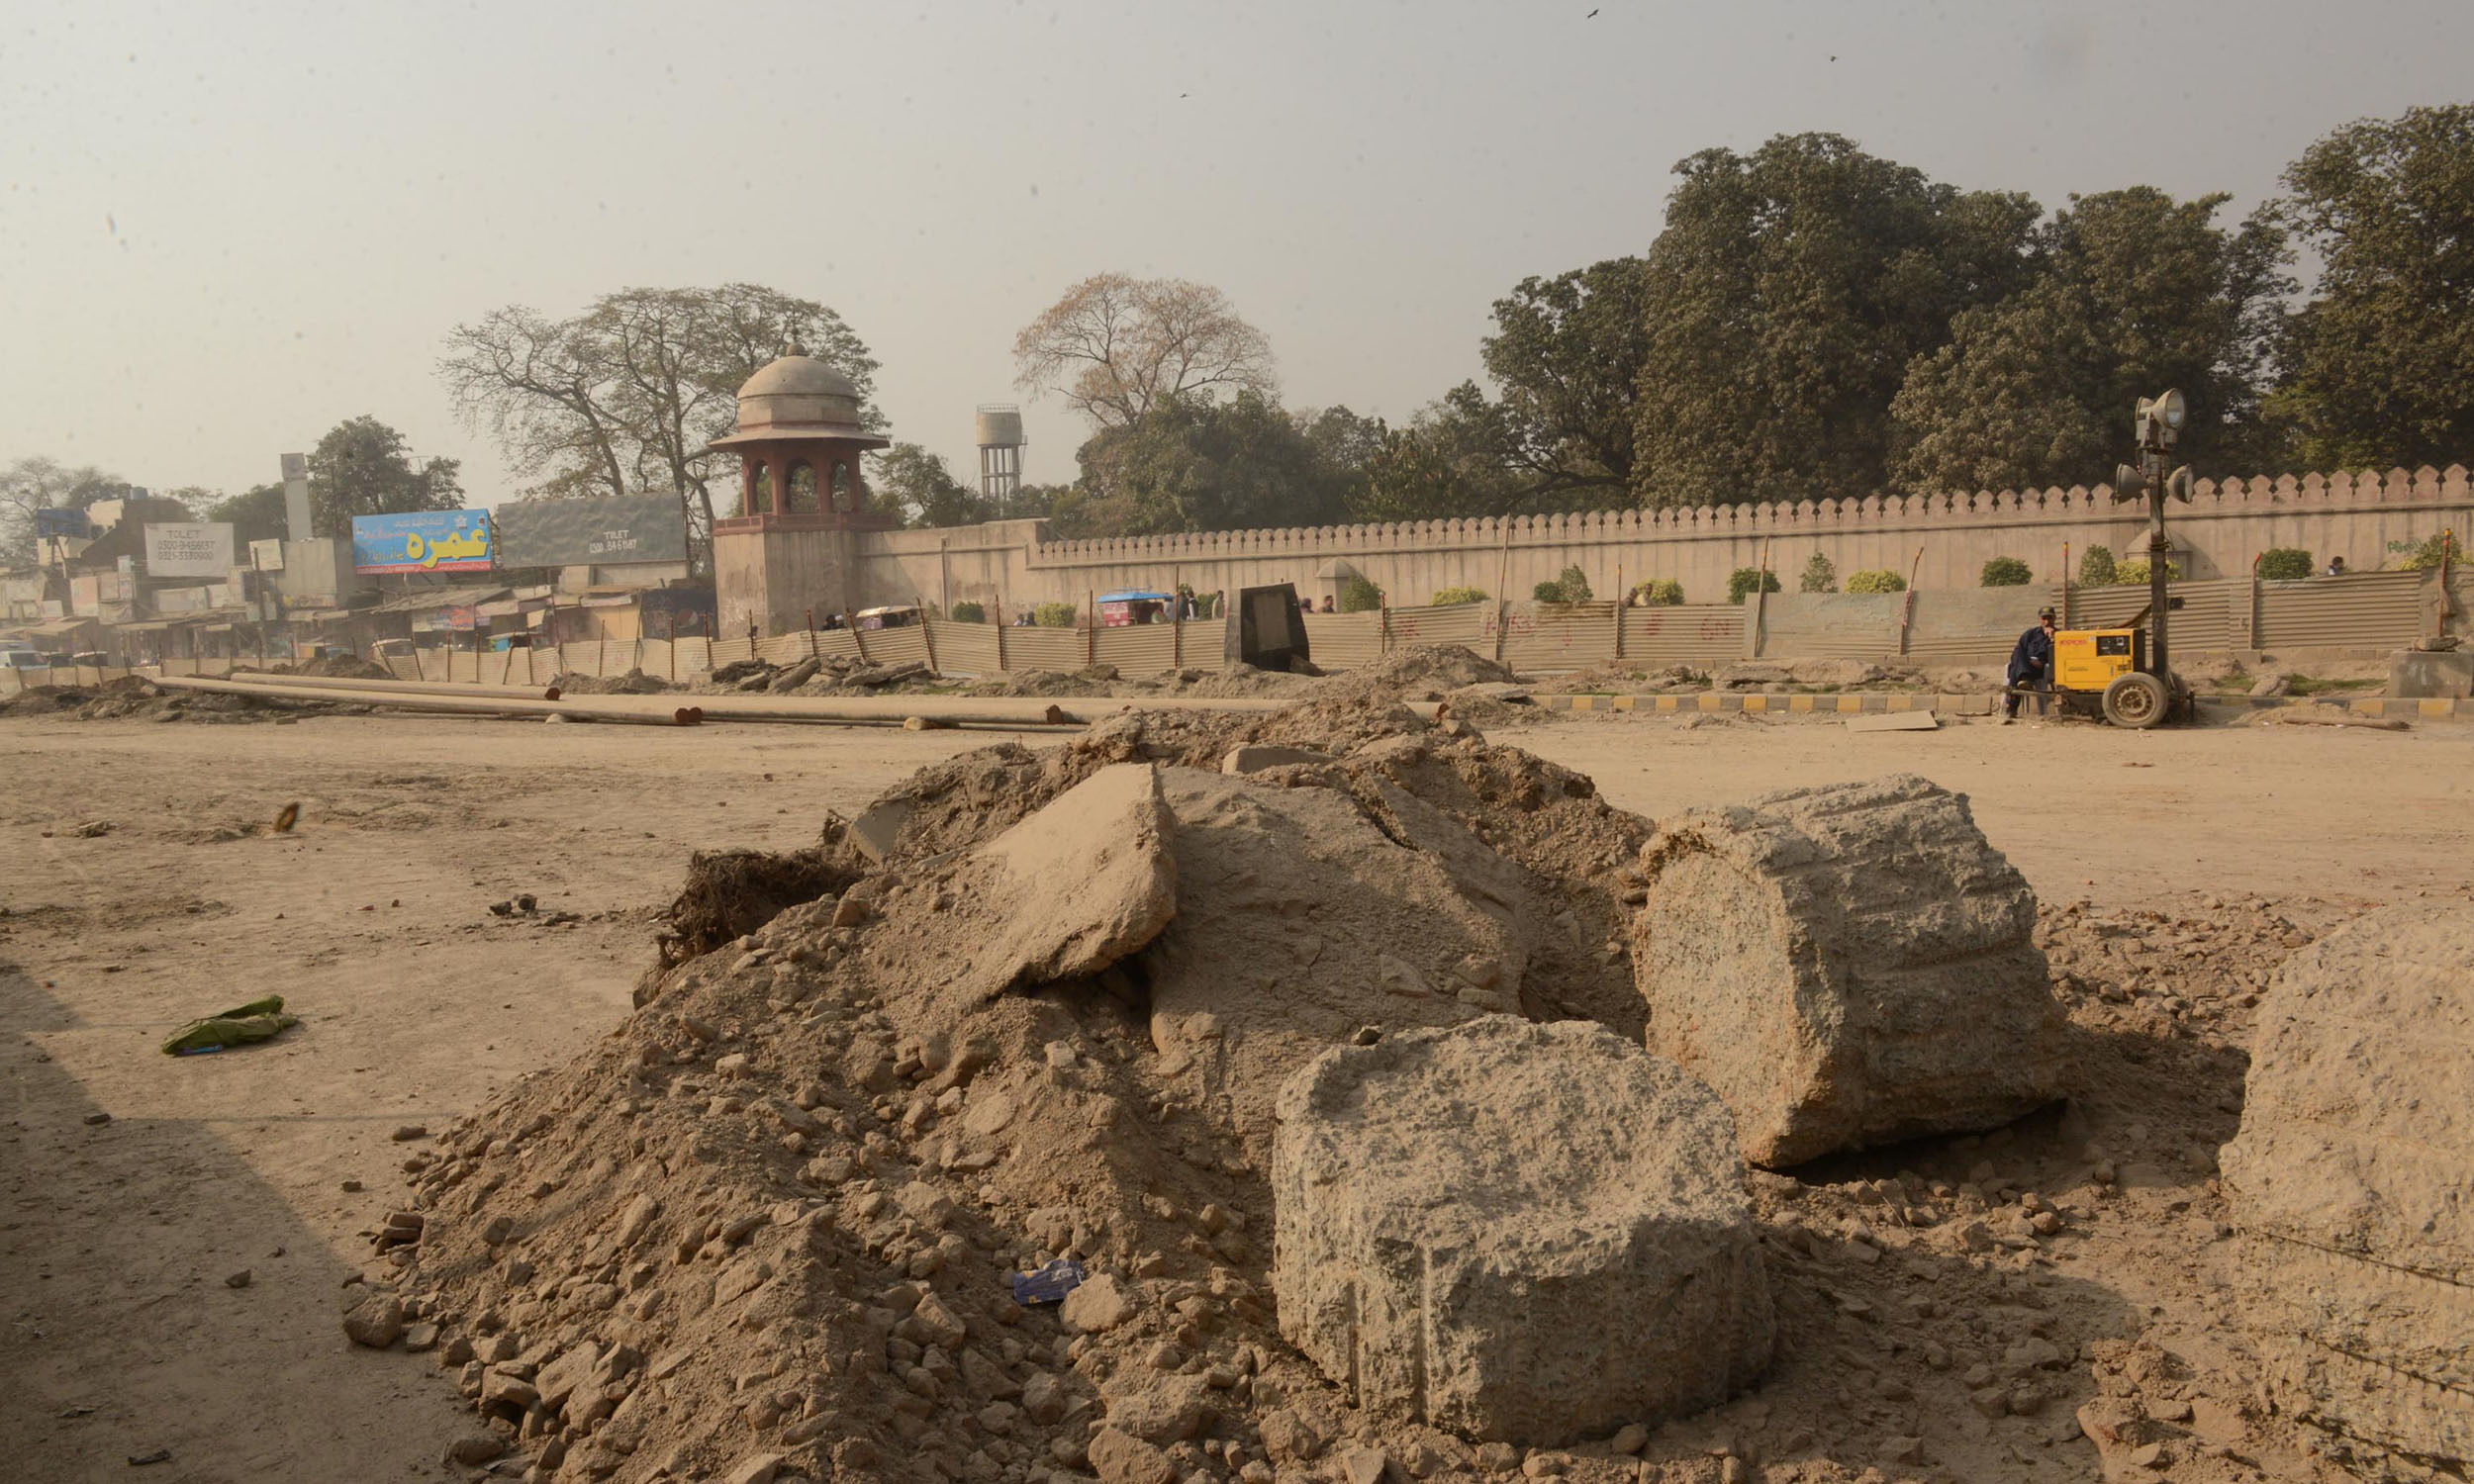 The site of a proposed Orange Line station near Shalimar Gardens | Azhar Jafferi, White Star